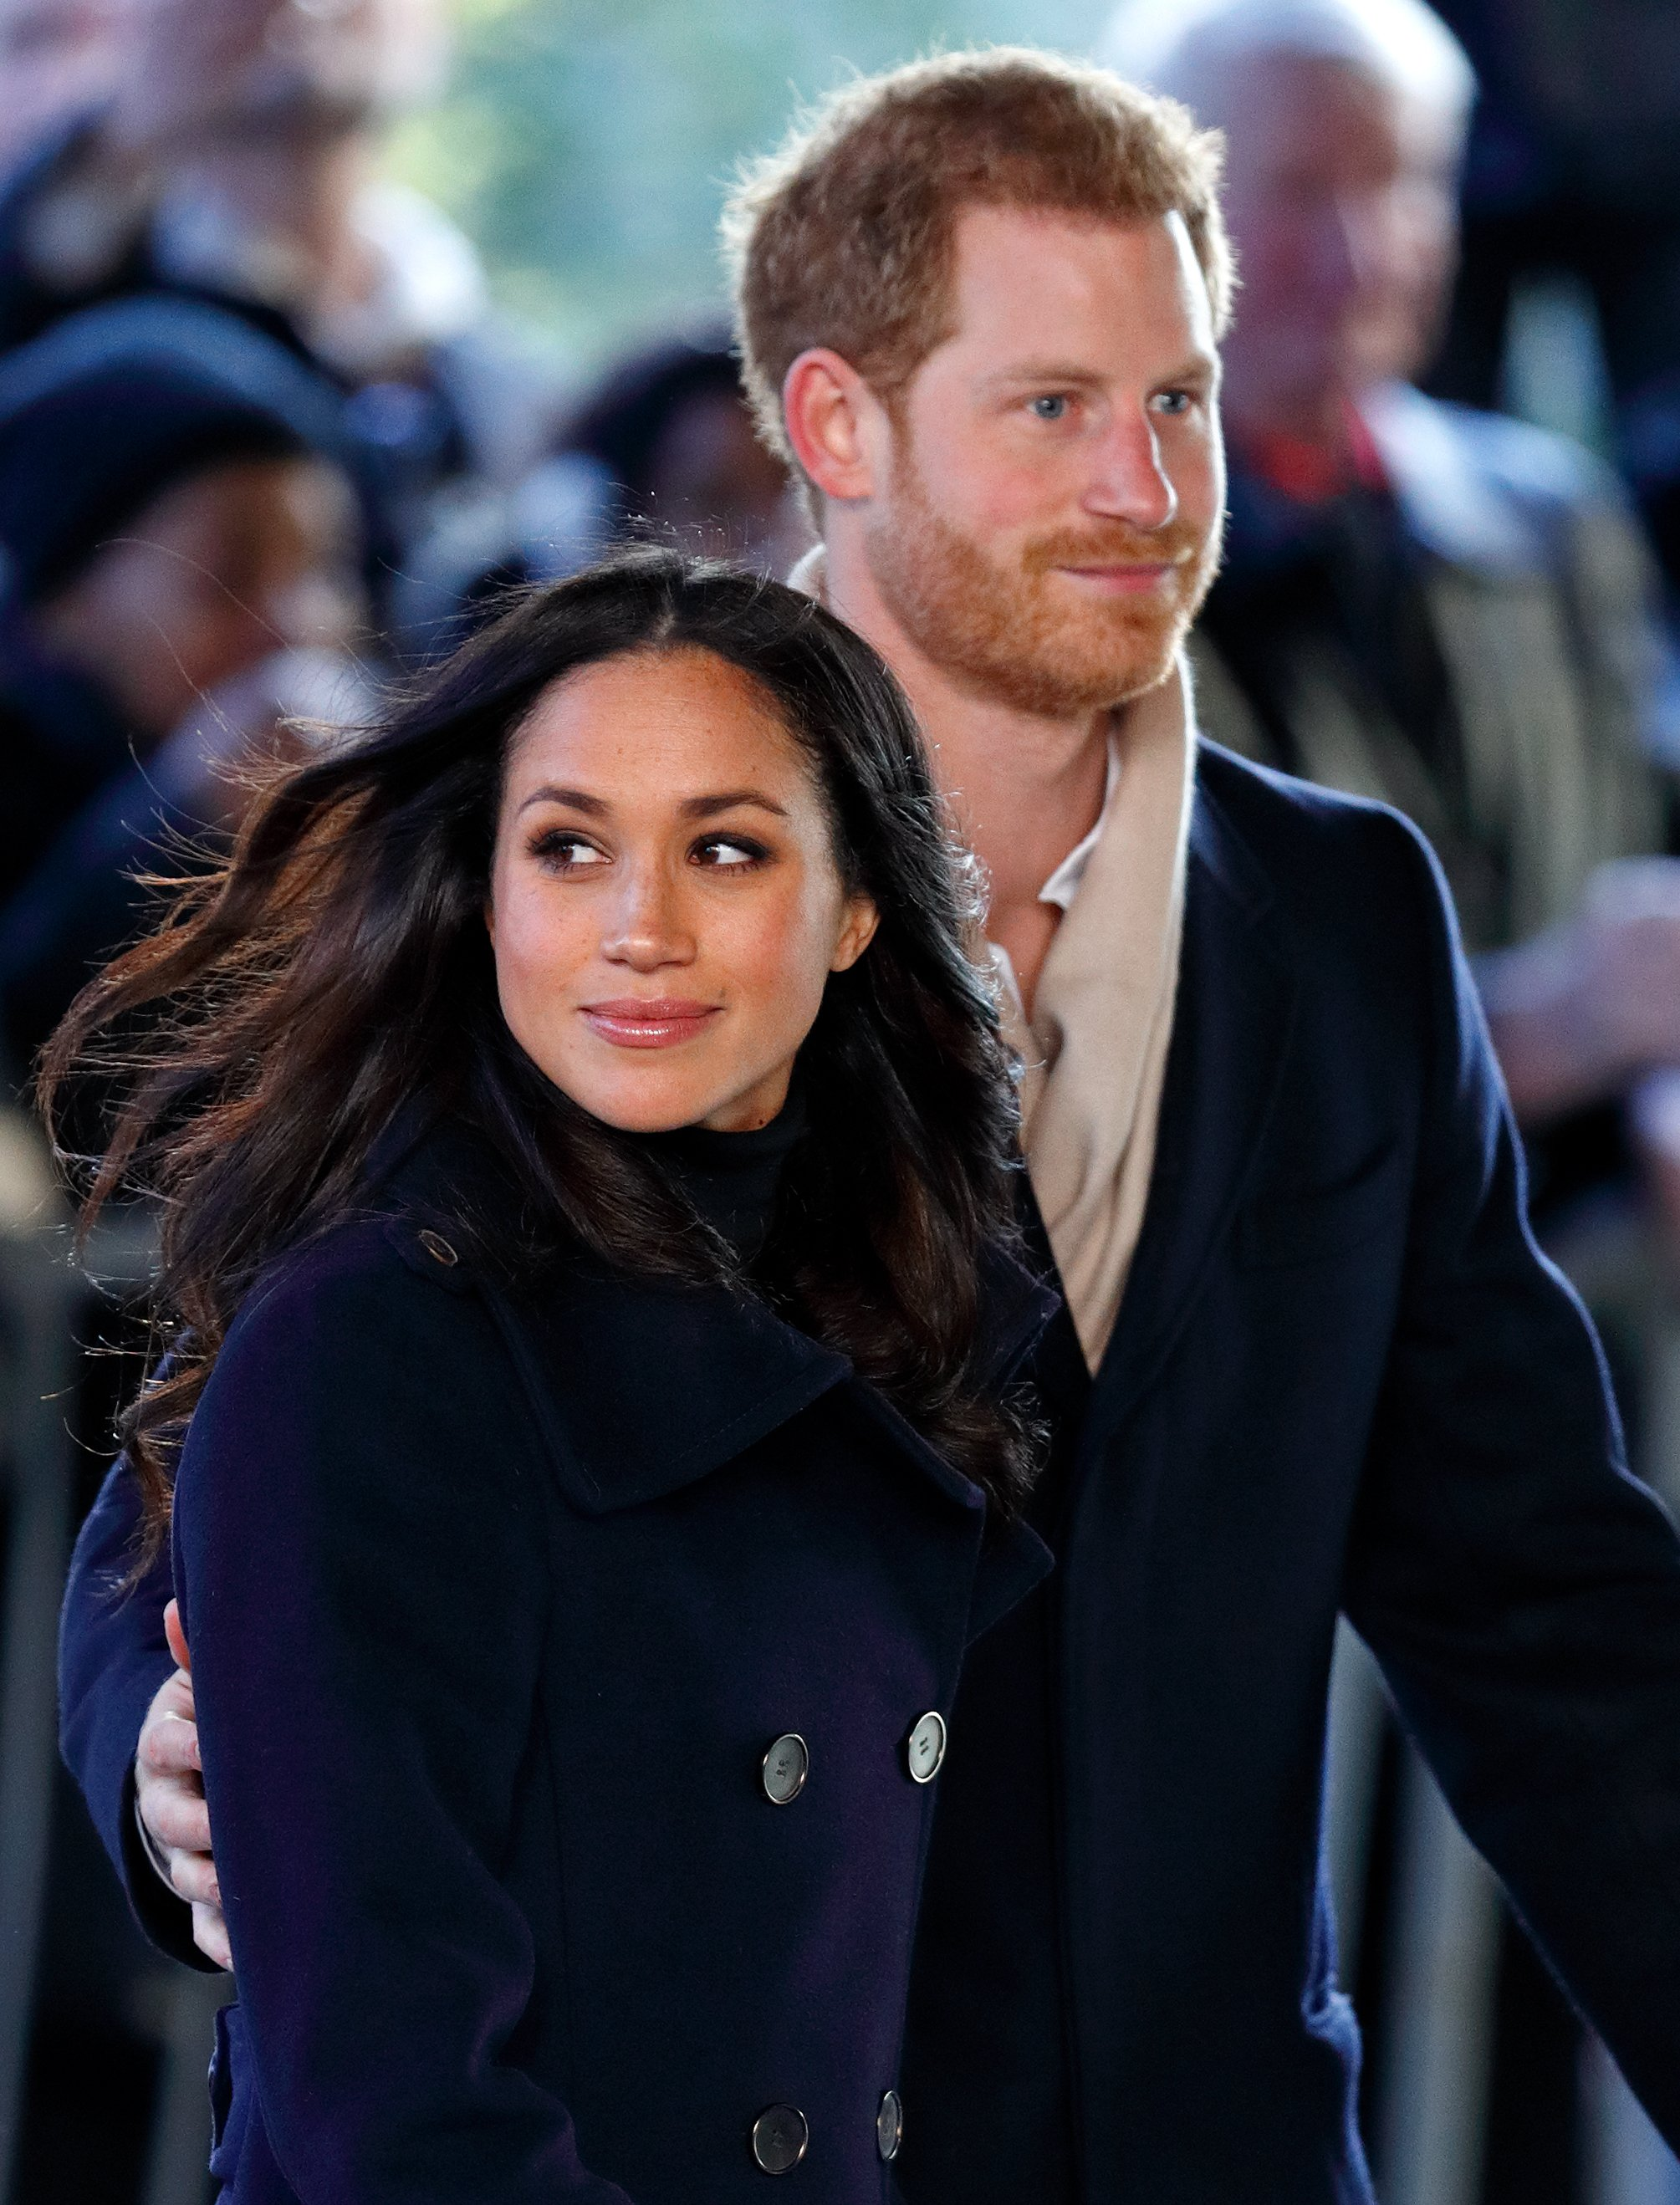 Image Credits: Getty Images / Max Mumby / Indigo   Meghan Markle and Prince Harry attend a Terrence Higgins Trust World AIDS Day charity fair at Nottingham Contemporary on December 1, 2017 in Nottingham, England. Prince Harry and Meghan Markle announced their engagement on Monday 27th November 2017 and will marry at St George's Chapel, Windsor in May 2018.